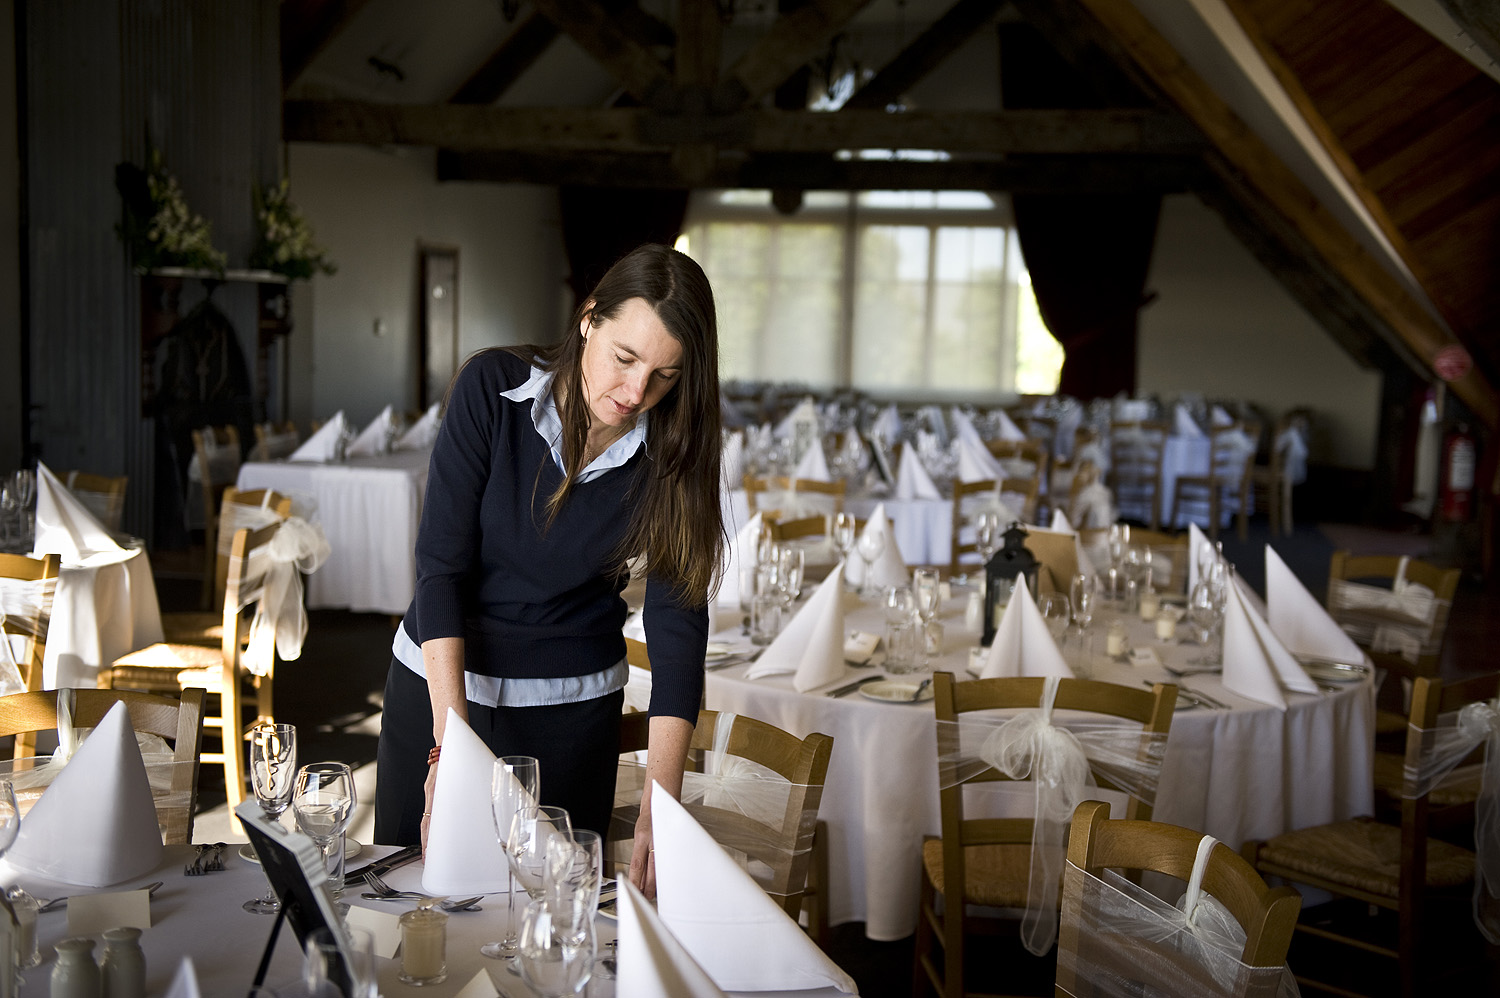 Rachel Fletcher Events Manager ensuring all is perfect for another wedding at her winery